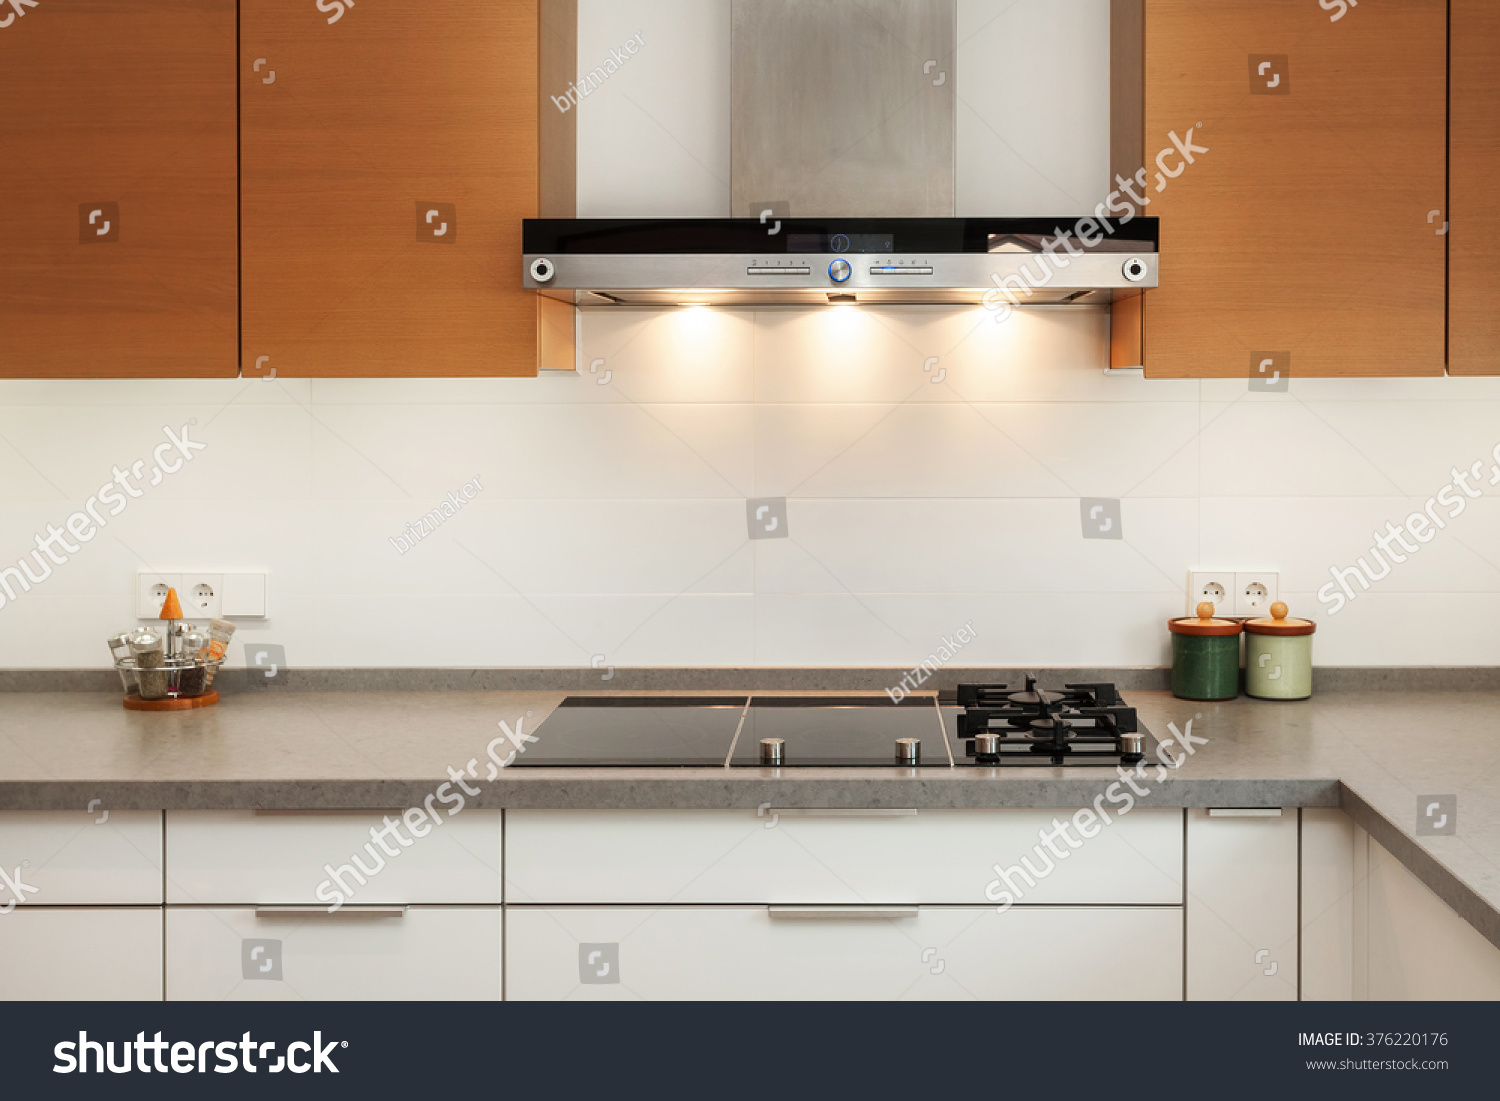 New Modern Kitchen Closeup Exhaust Hood Ceramic Cooking Plate Stock Photo 376220176